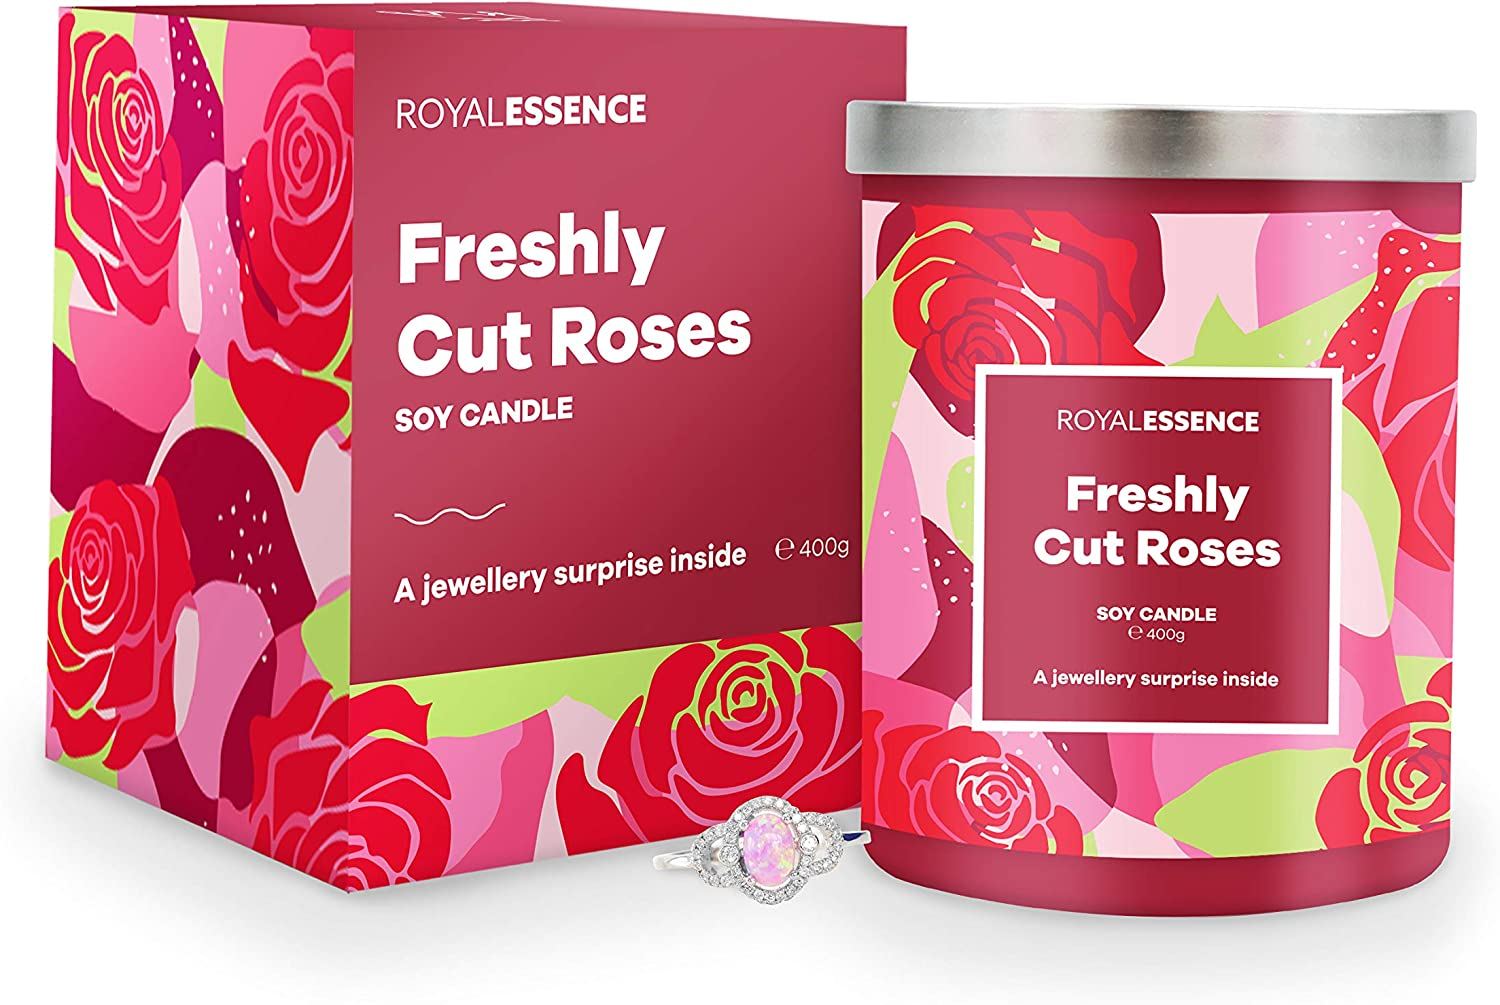 Ring Size 9 Surprise 925 Sterling Silver Jewellery Valued at /£50 to /£3,000 Royal Essence Freshly Cut Roses Jewellery Candle